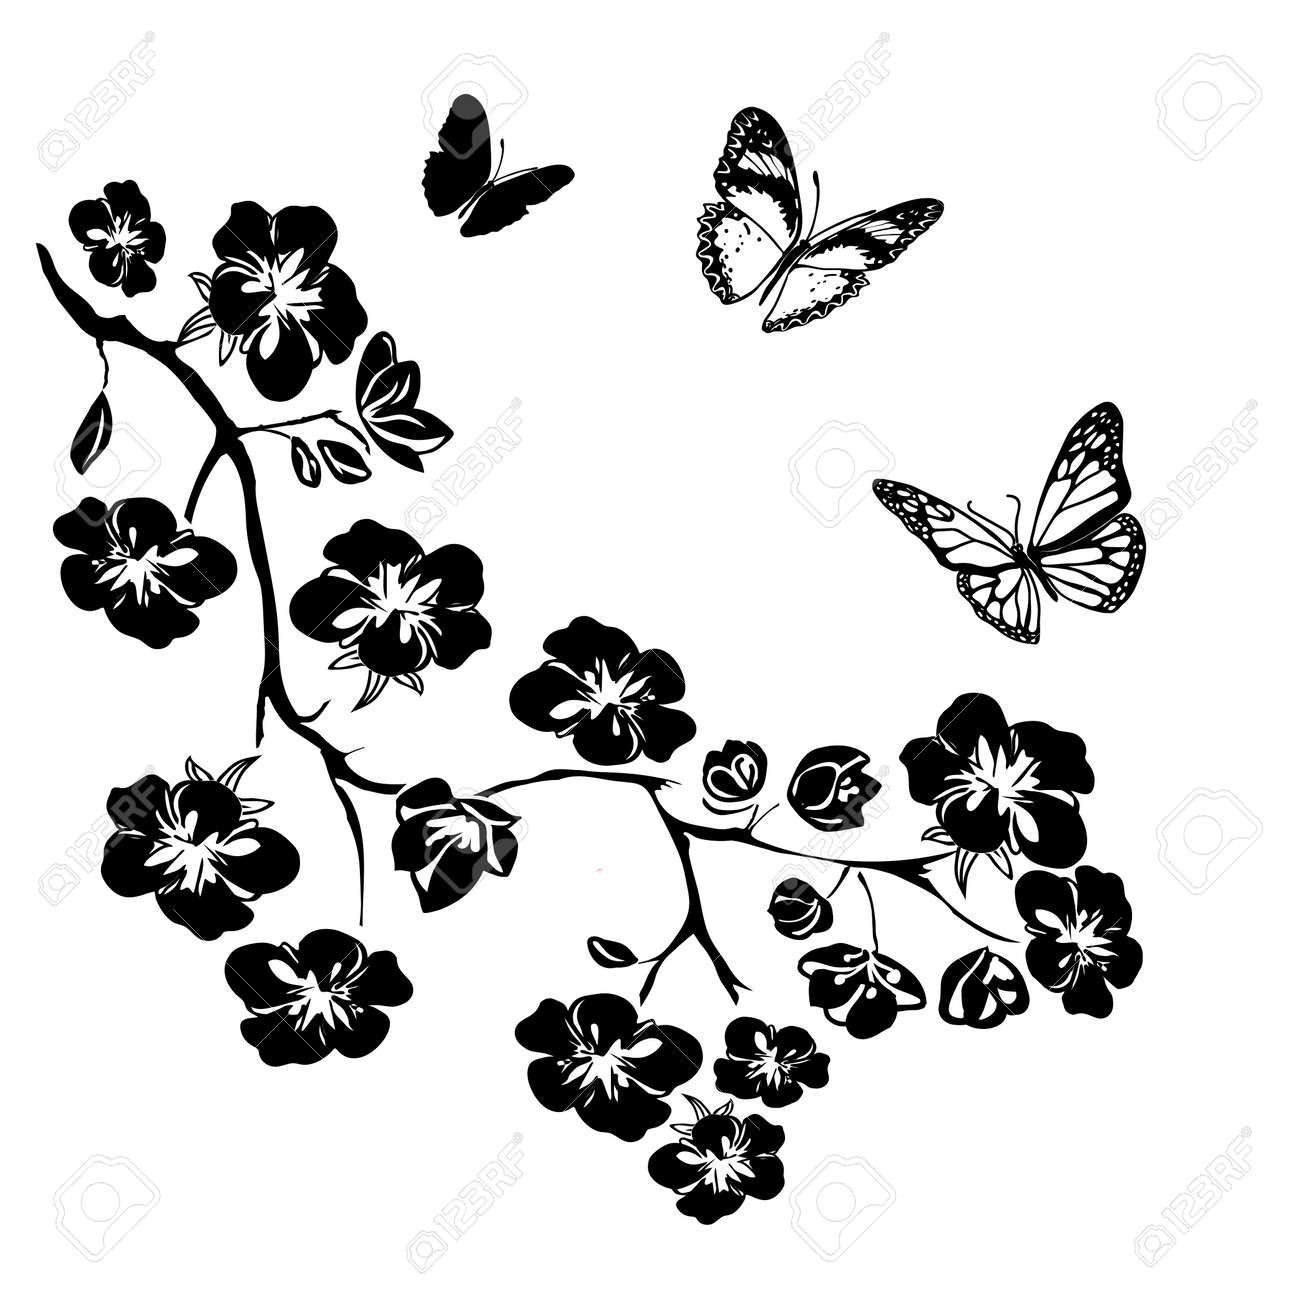 twig sakura blossoms and butterflies. Vector illustration. Black Silhouette on white background - 43574443